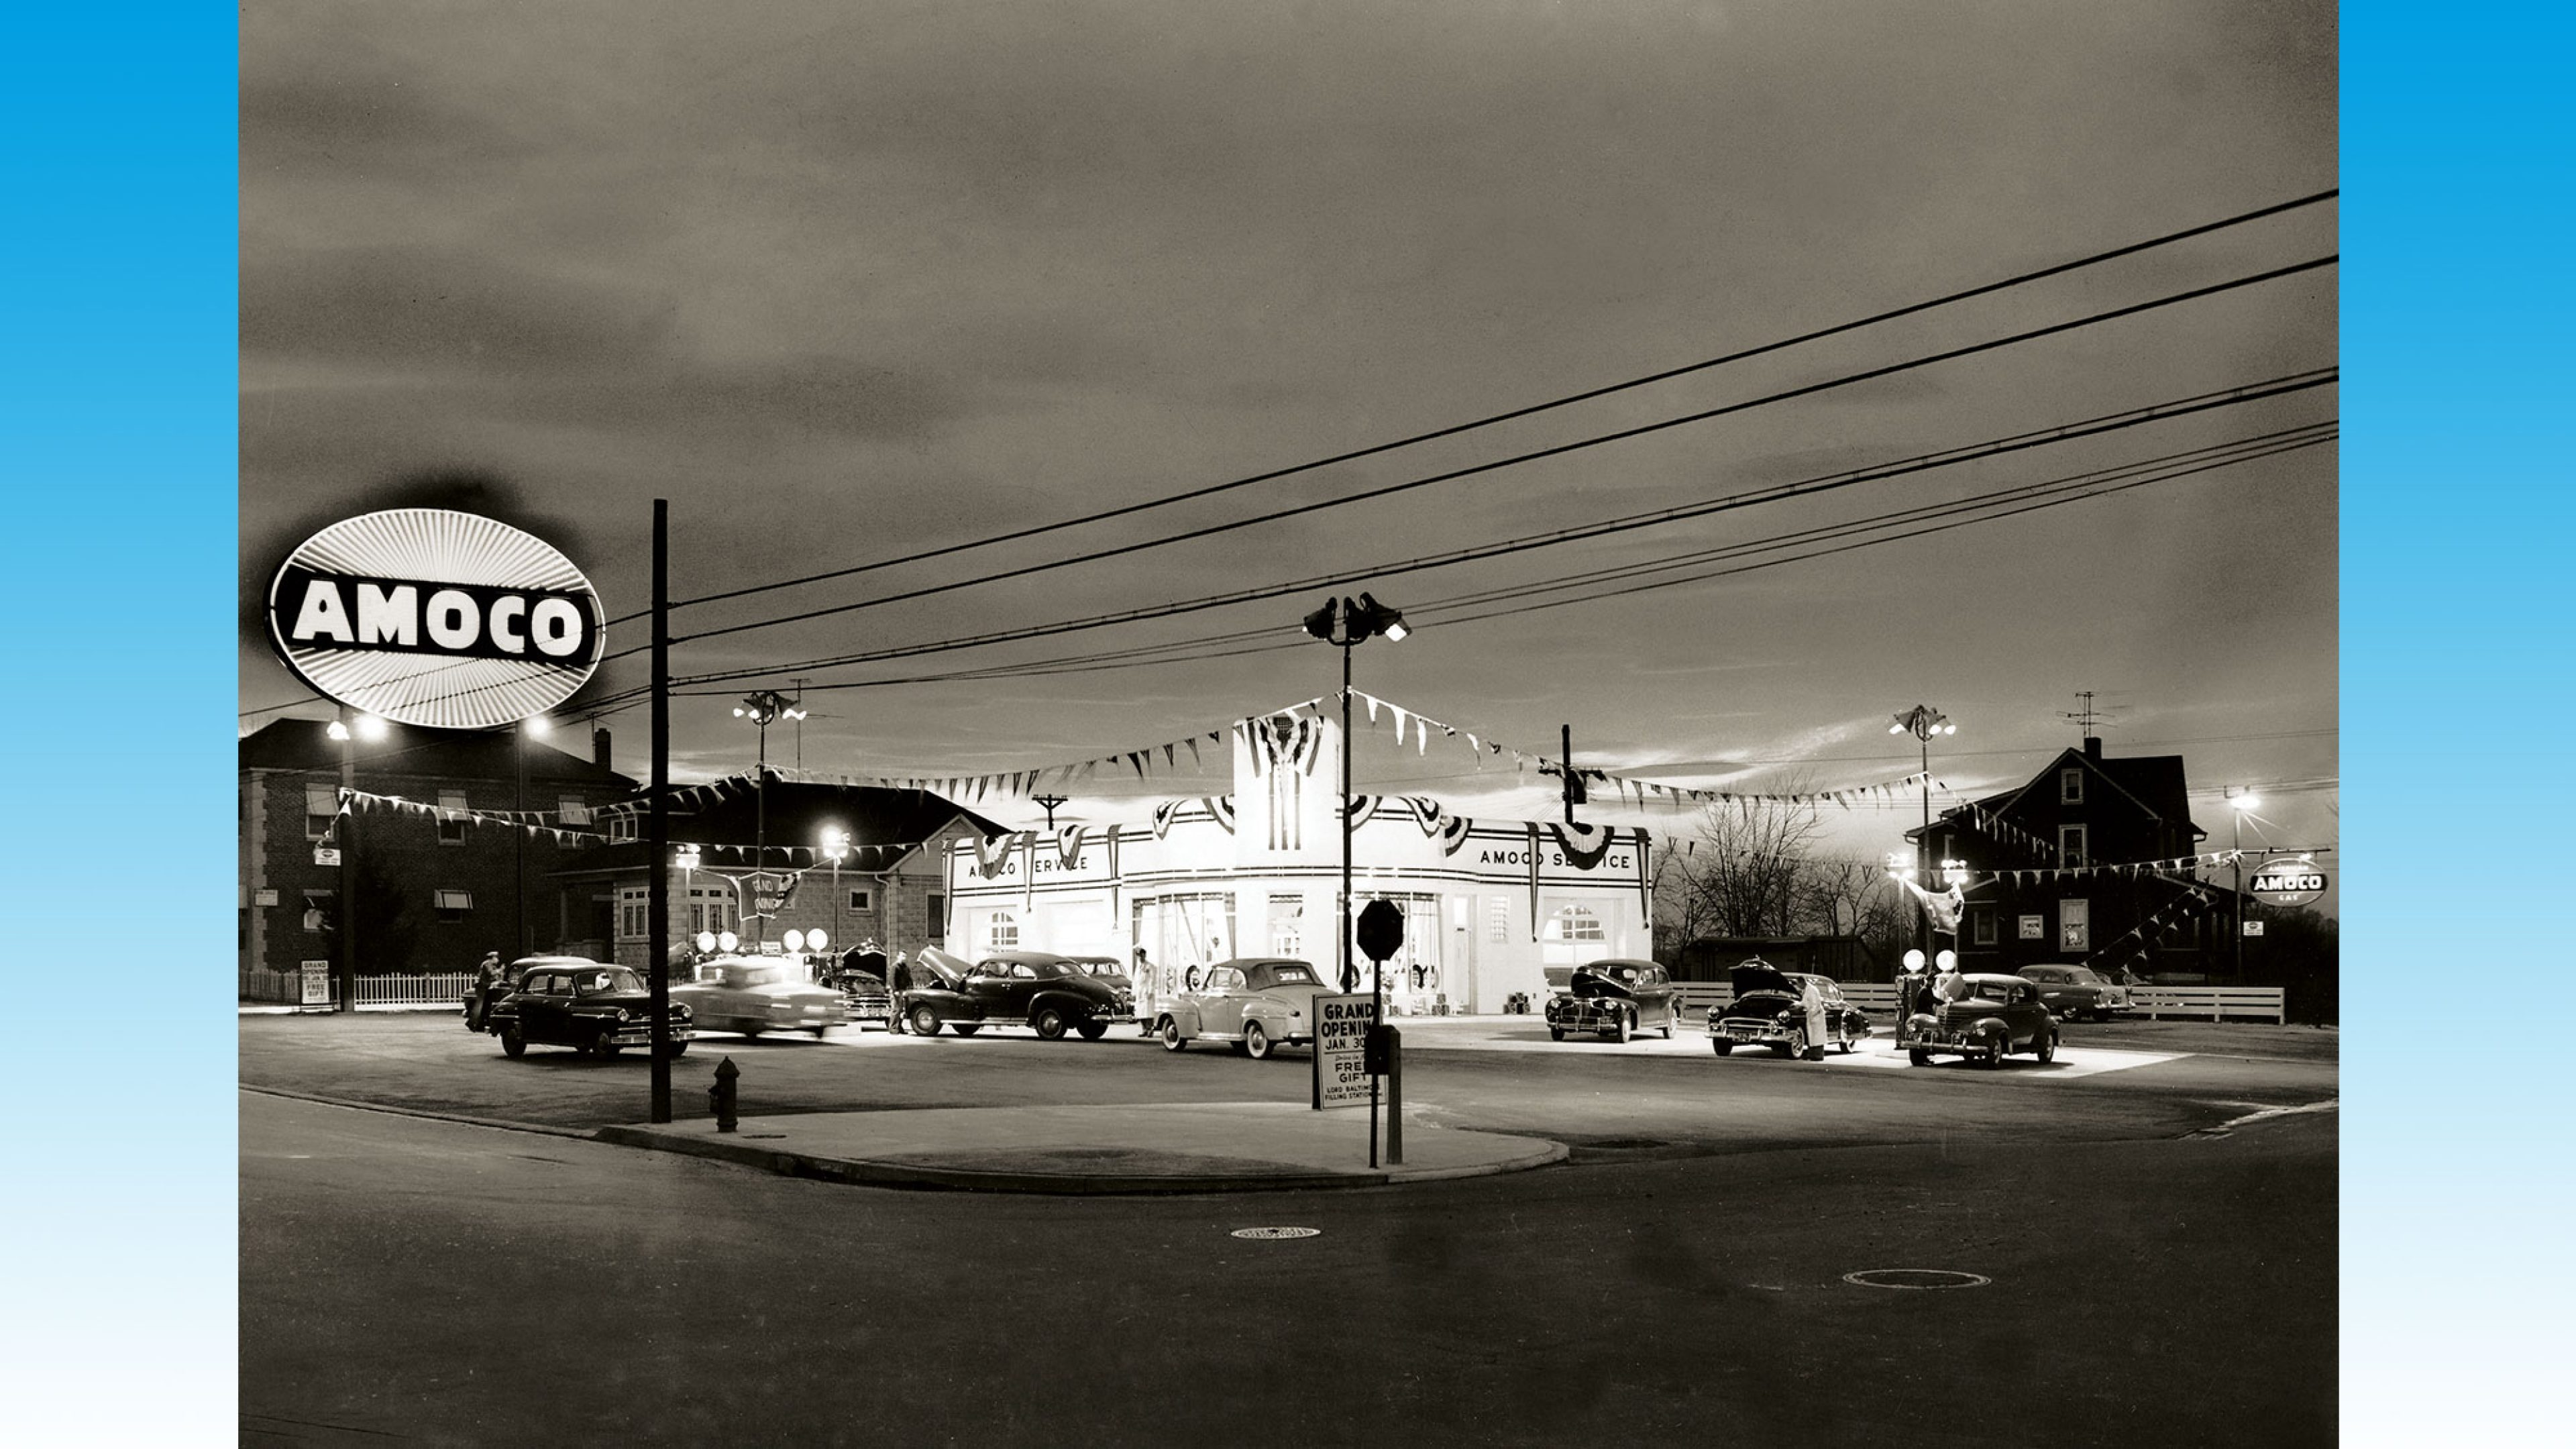 The opening of a new Amoco service station near Baltimore, US, in 1953. Bunting lines the car park, directly in front of the illuminated store